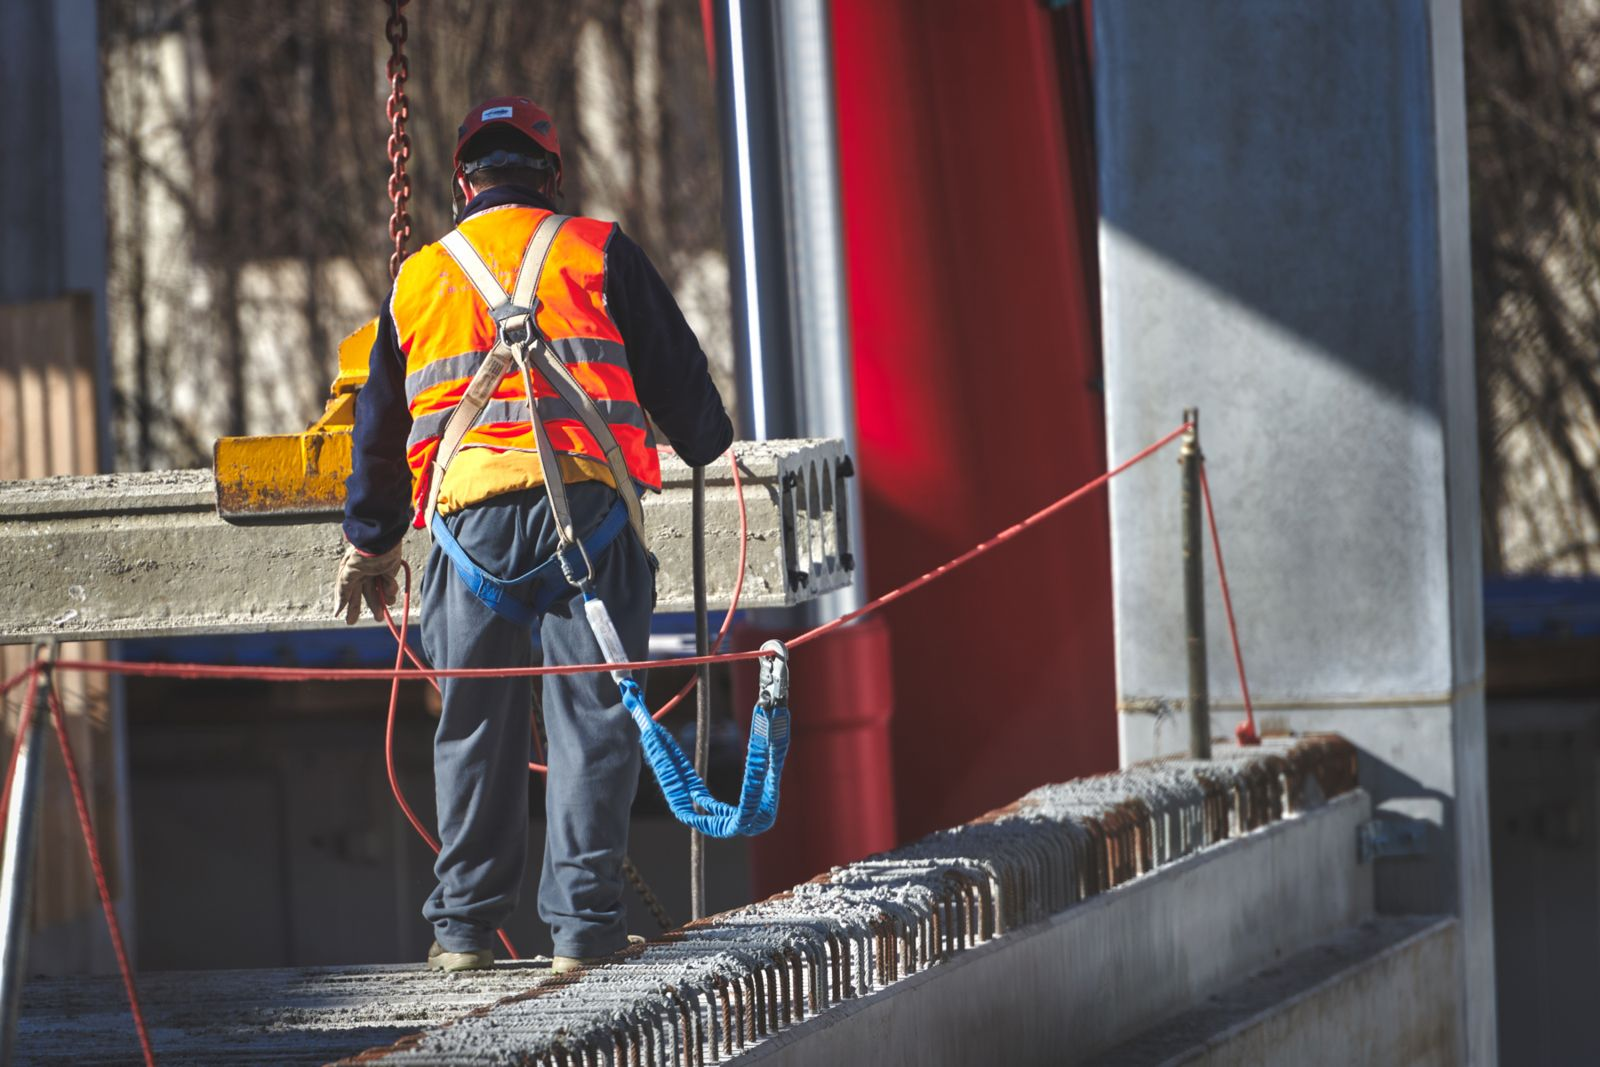 Hurt at work? You may be entitled to more than just workers compensation, a Massachusetts injury lawyer explains